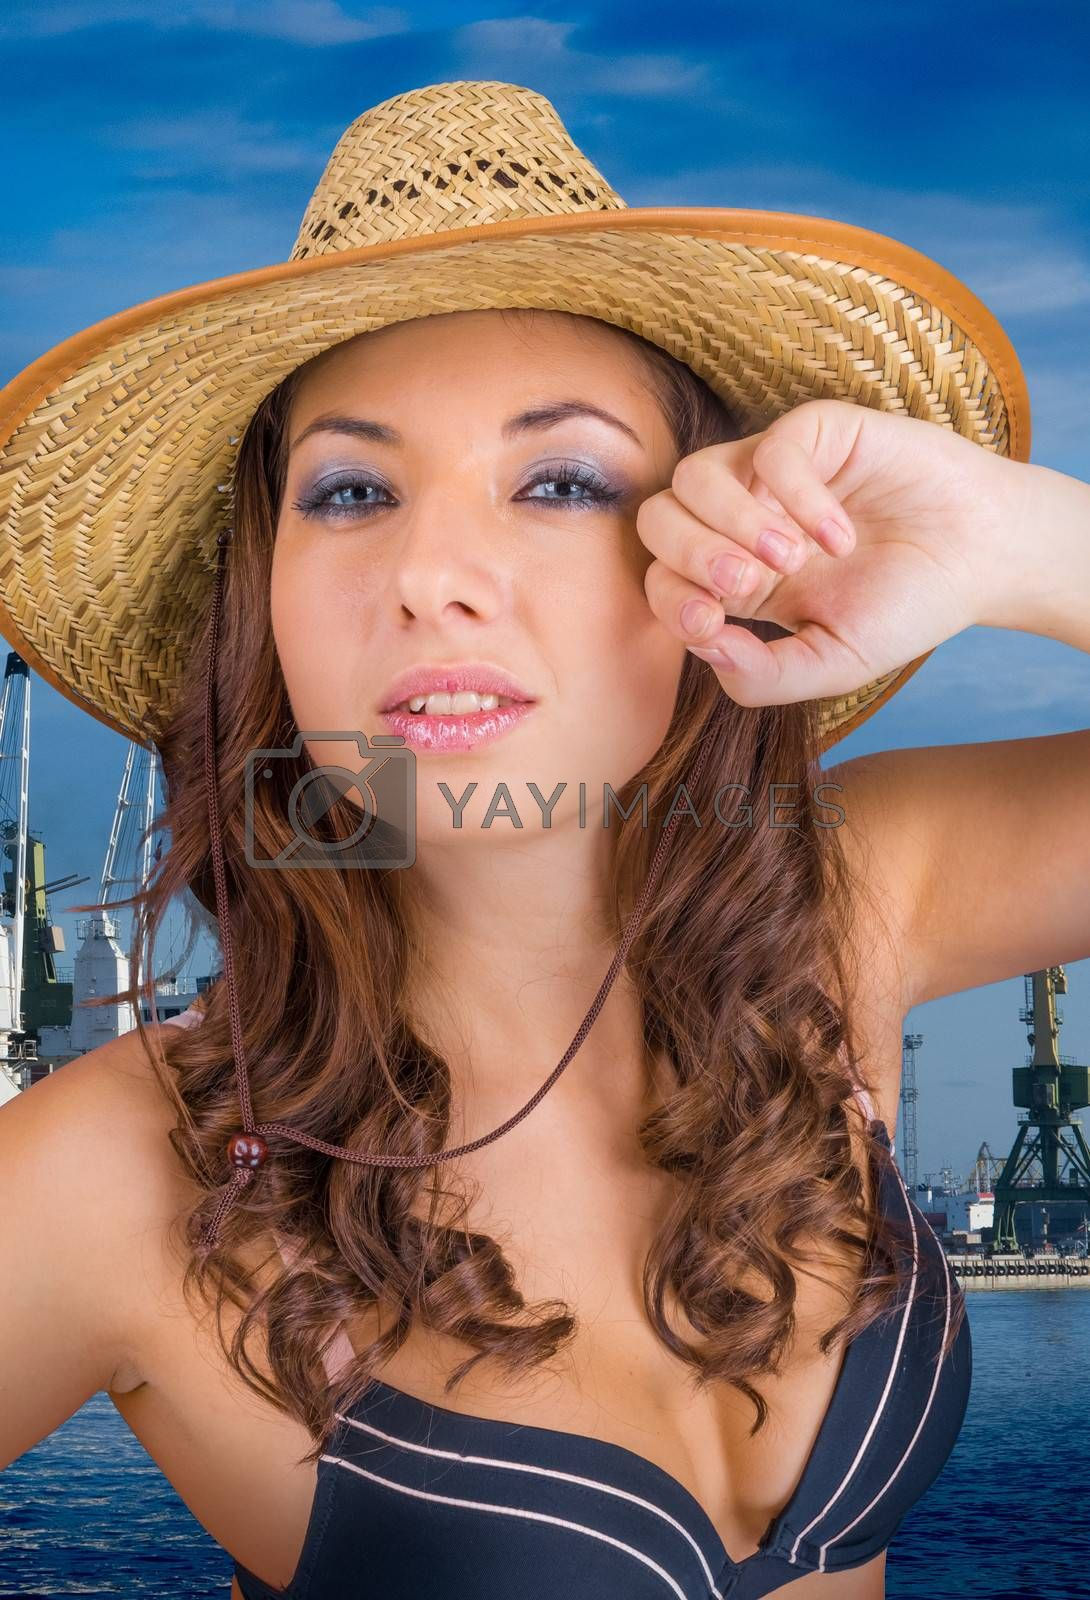 sexy lady in her bra and hat on the background of the sky and the sea in the sea port